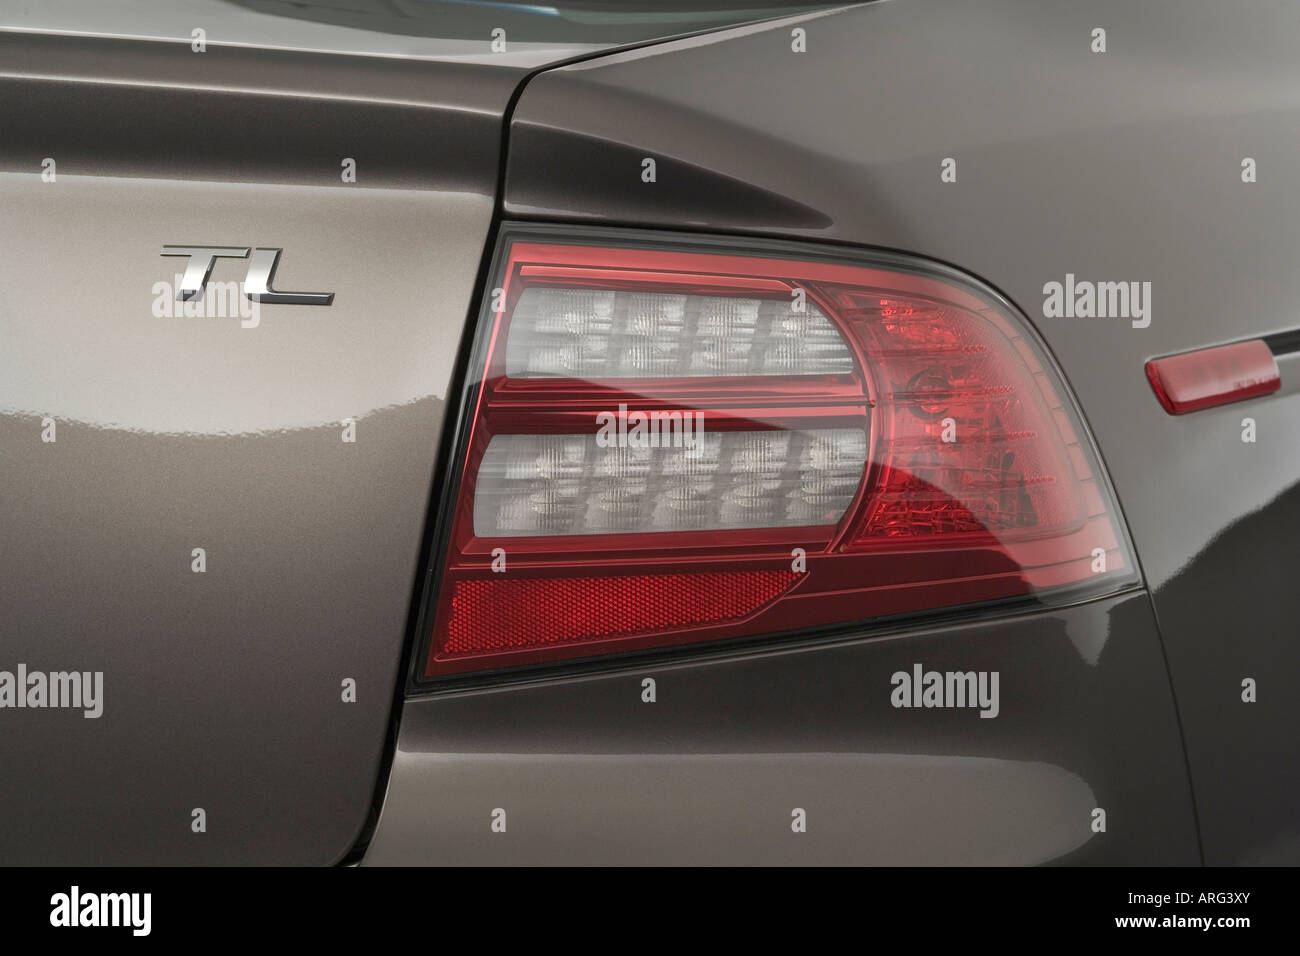 2007 Acura TL in Beige - Tail light - Stock Image